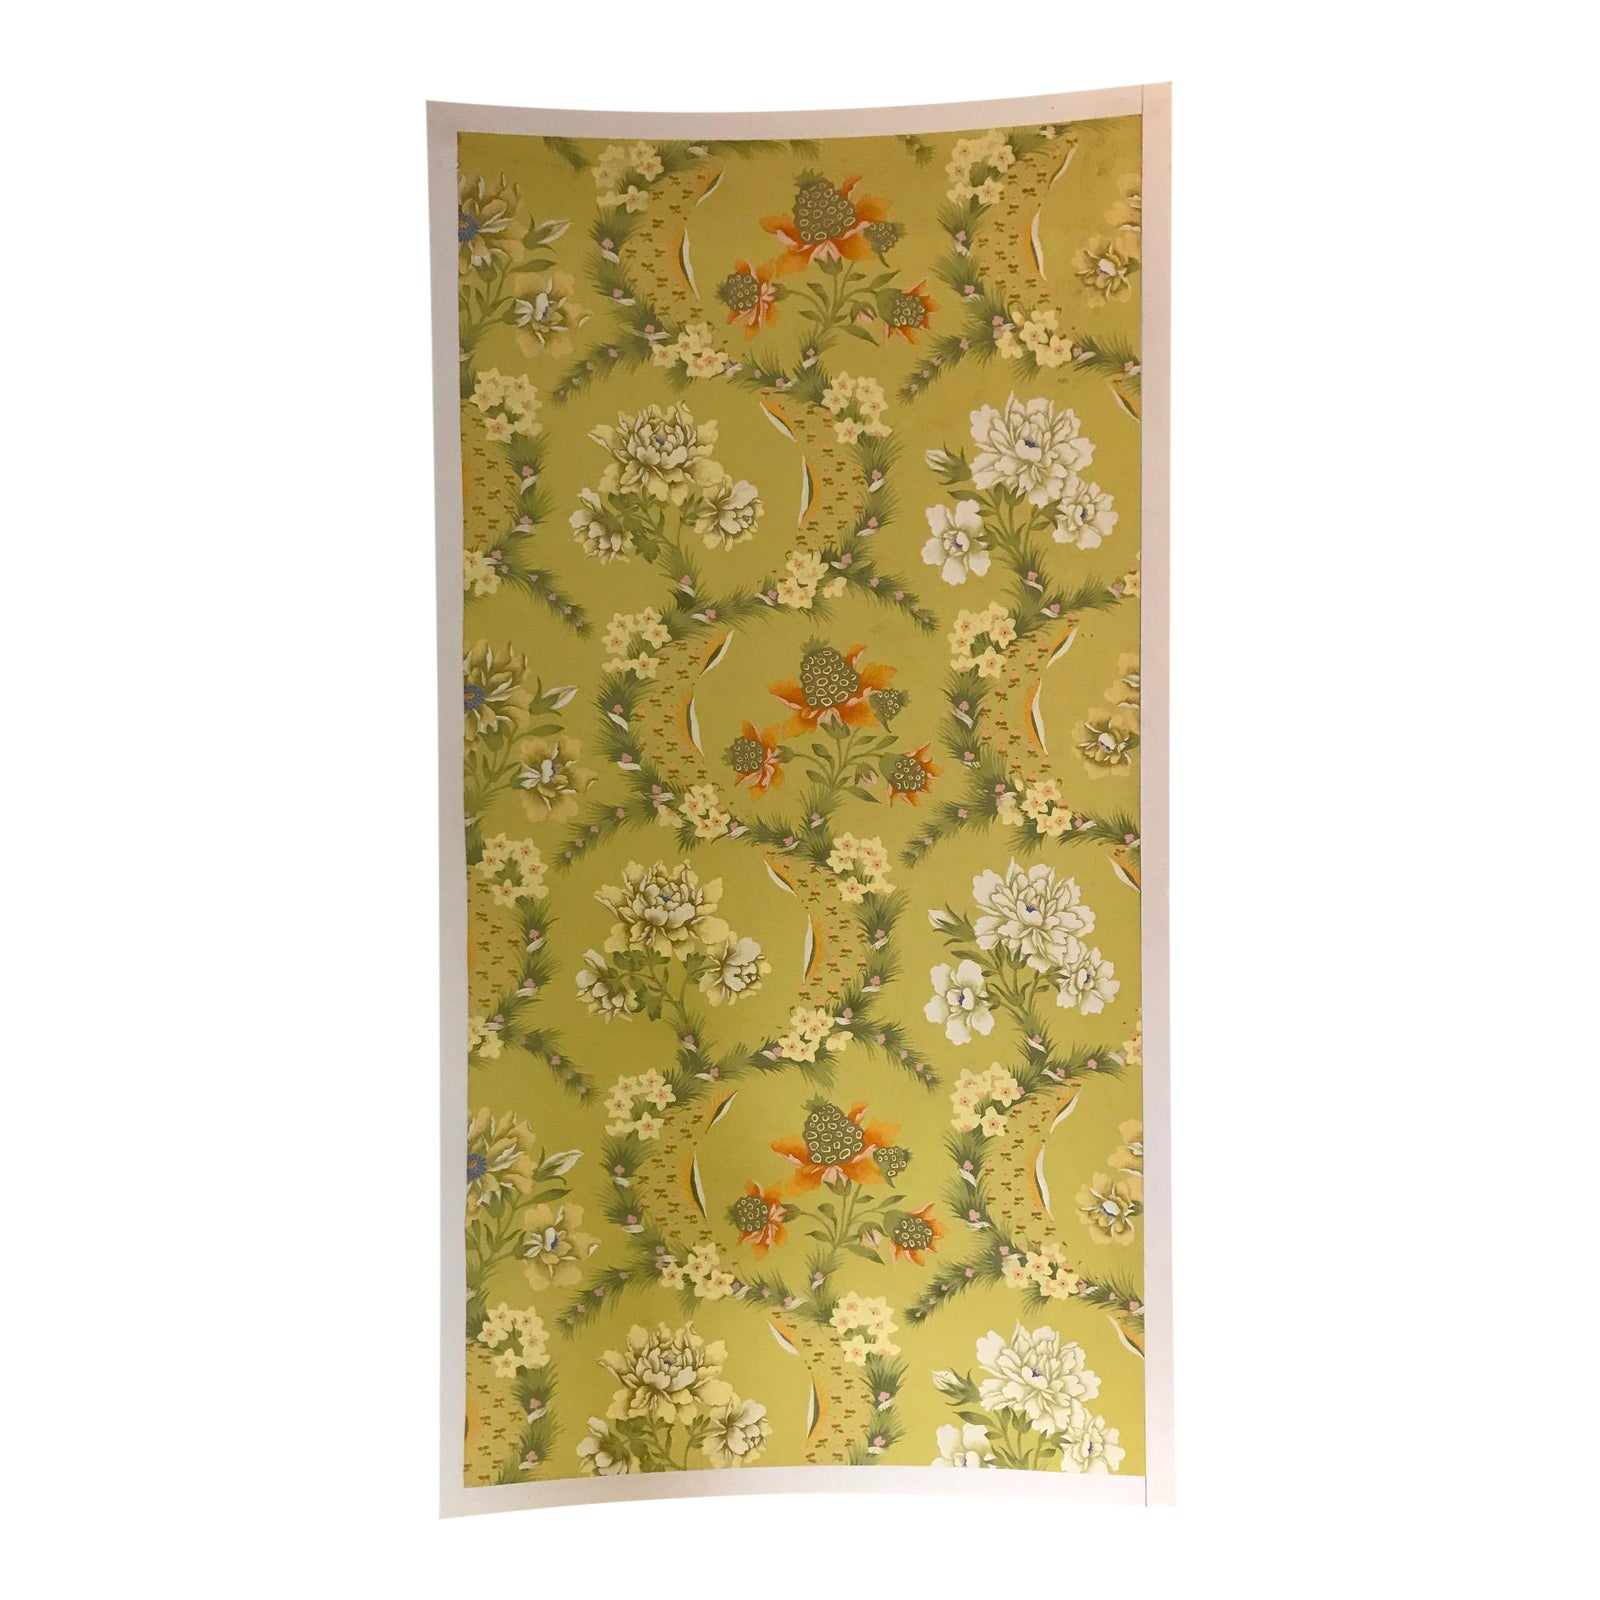 Boho Chic Floral Wallpaper Panel Silkscreened And Hand Painted